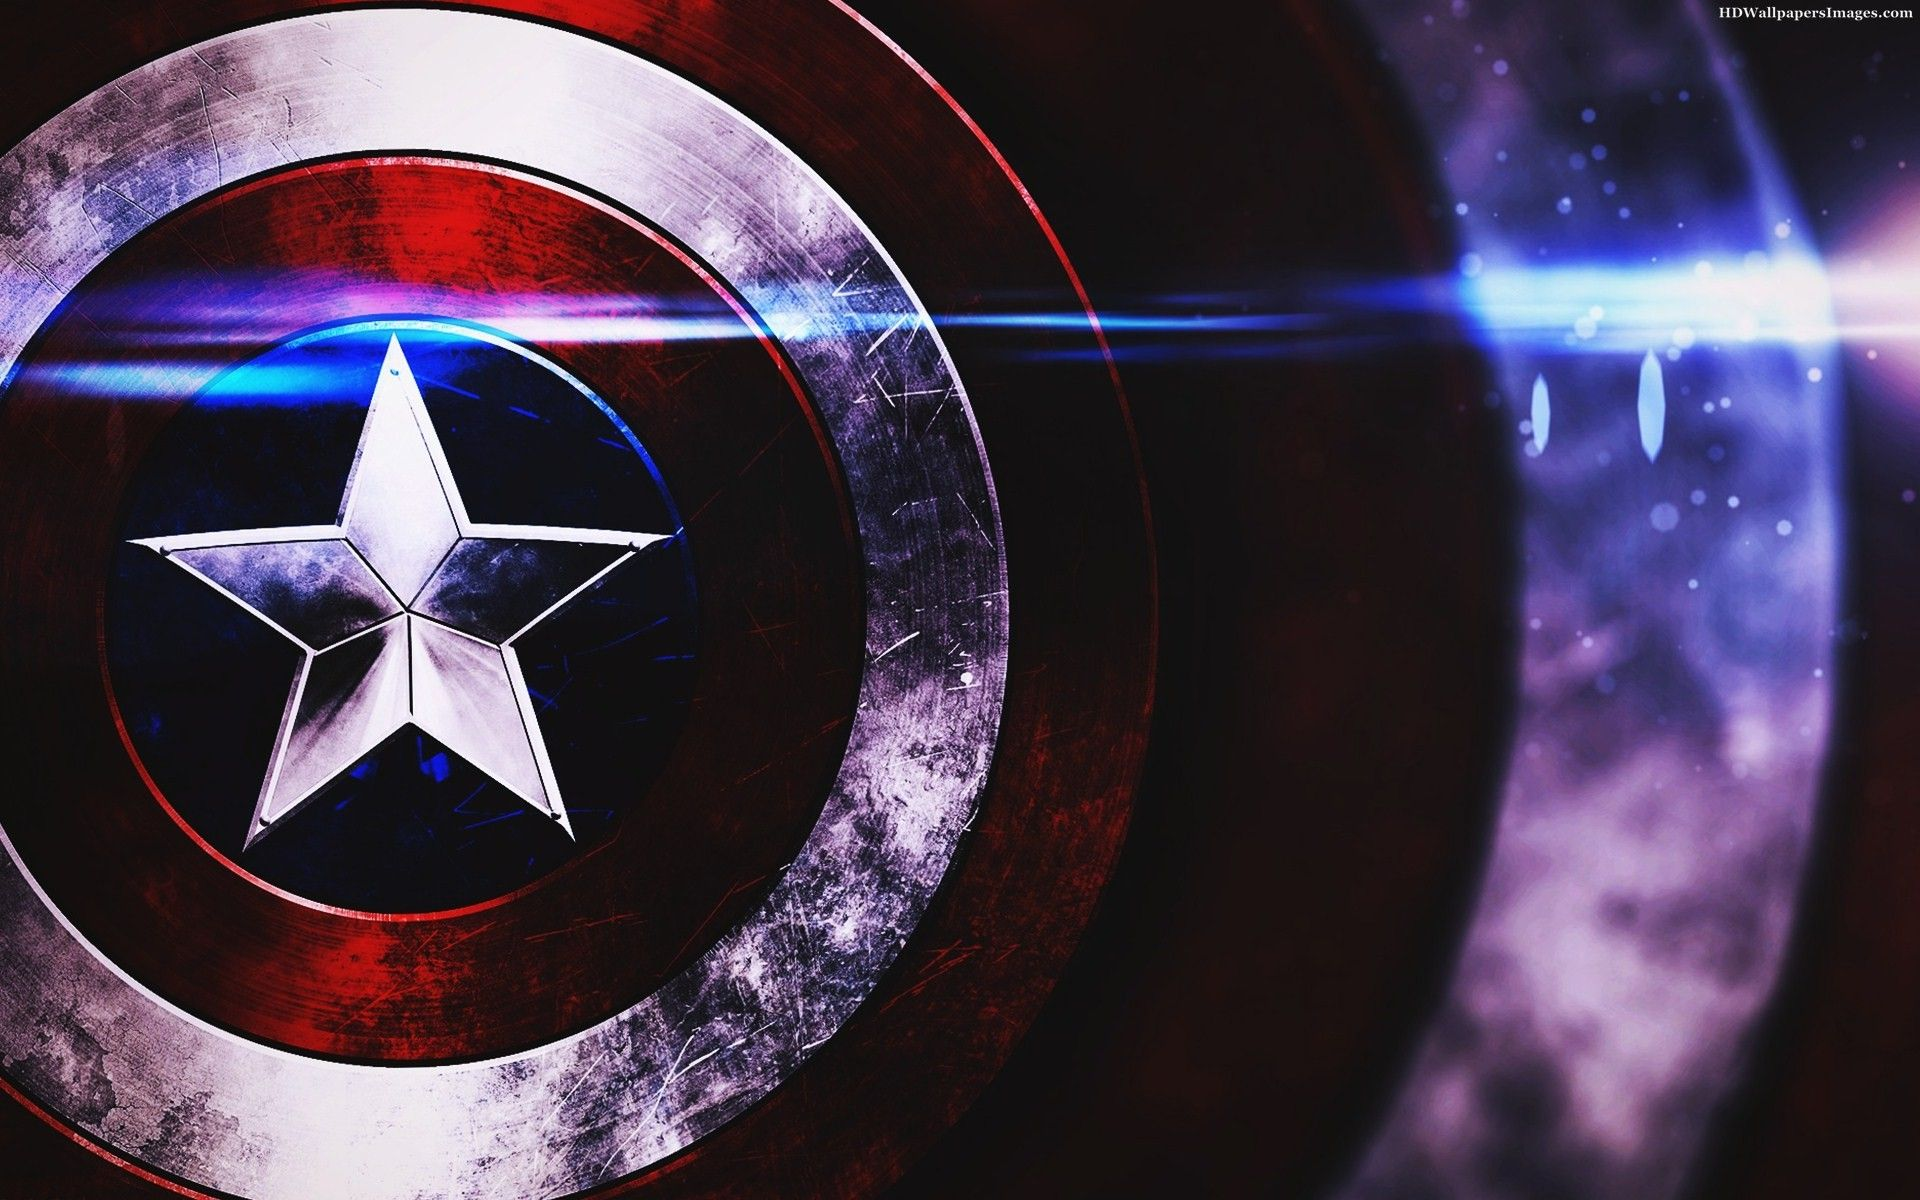 Hd wallpaper of captain america - Captain America Hd Wallpapers P Hd Wallpapers Pinterest Capt America And Wallpaper